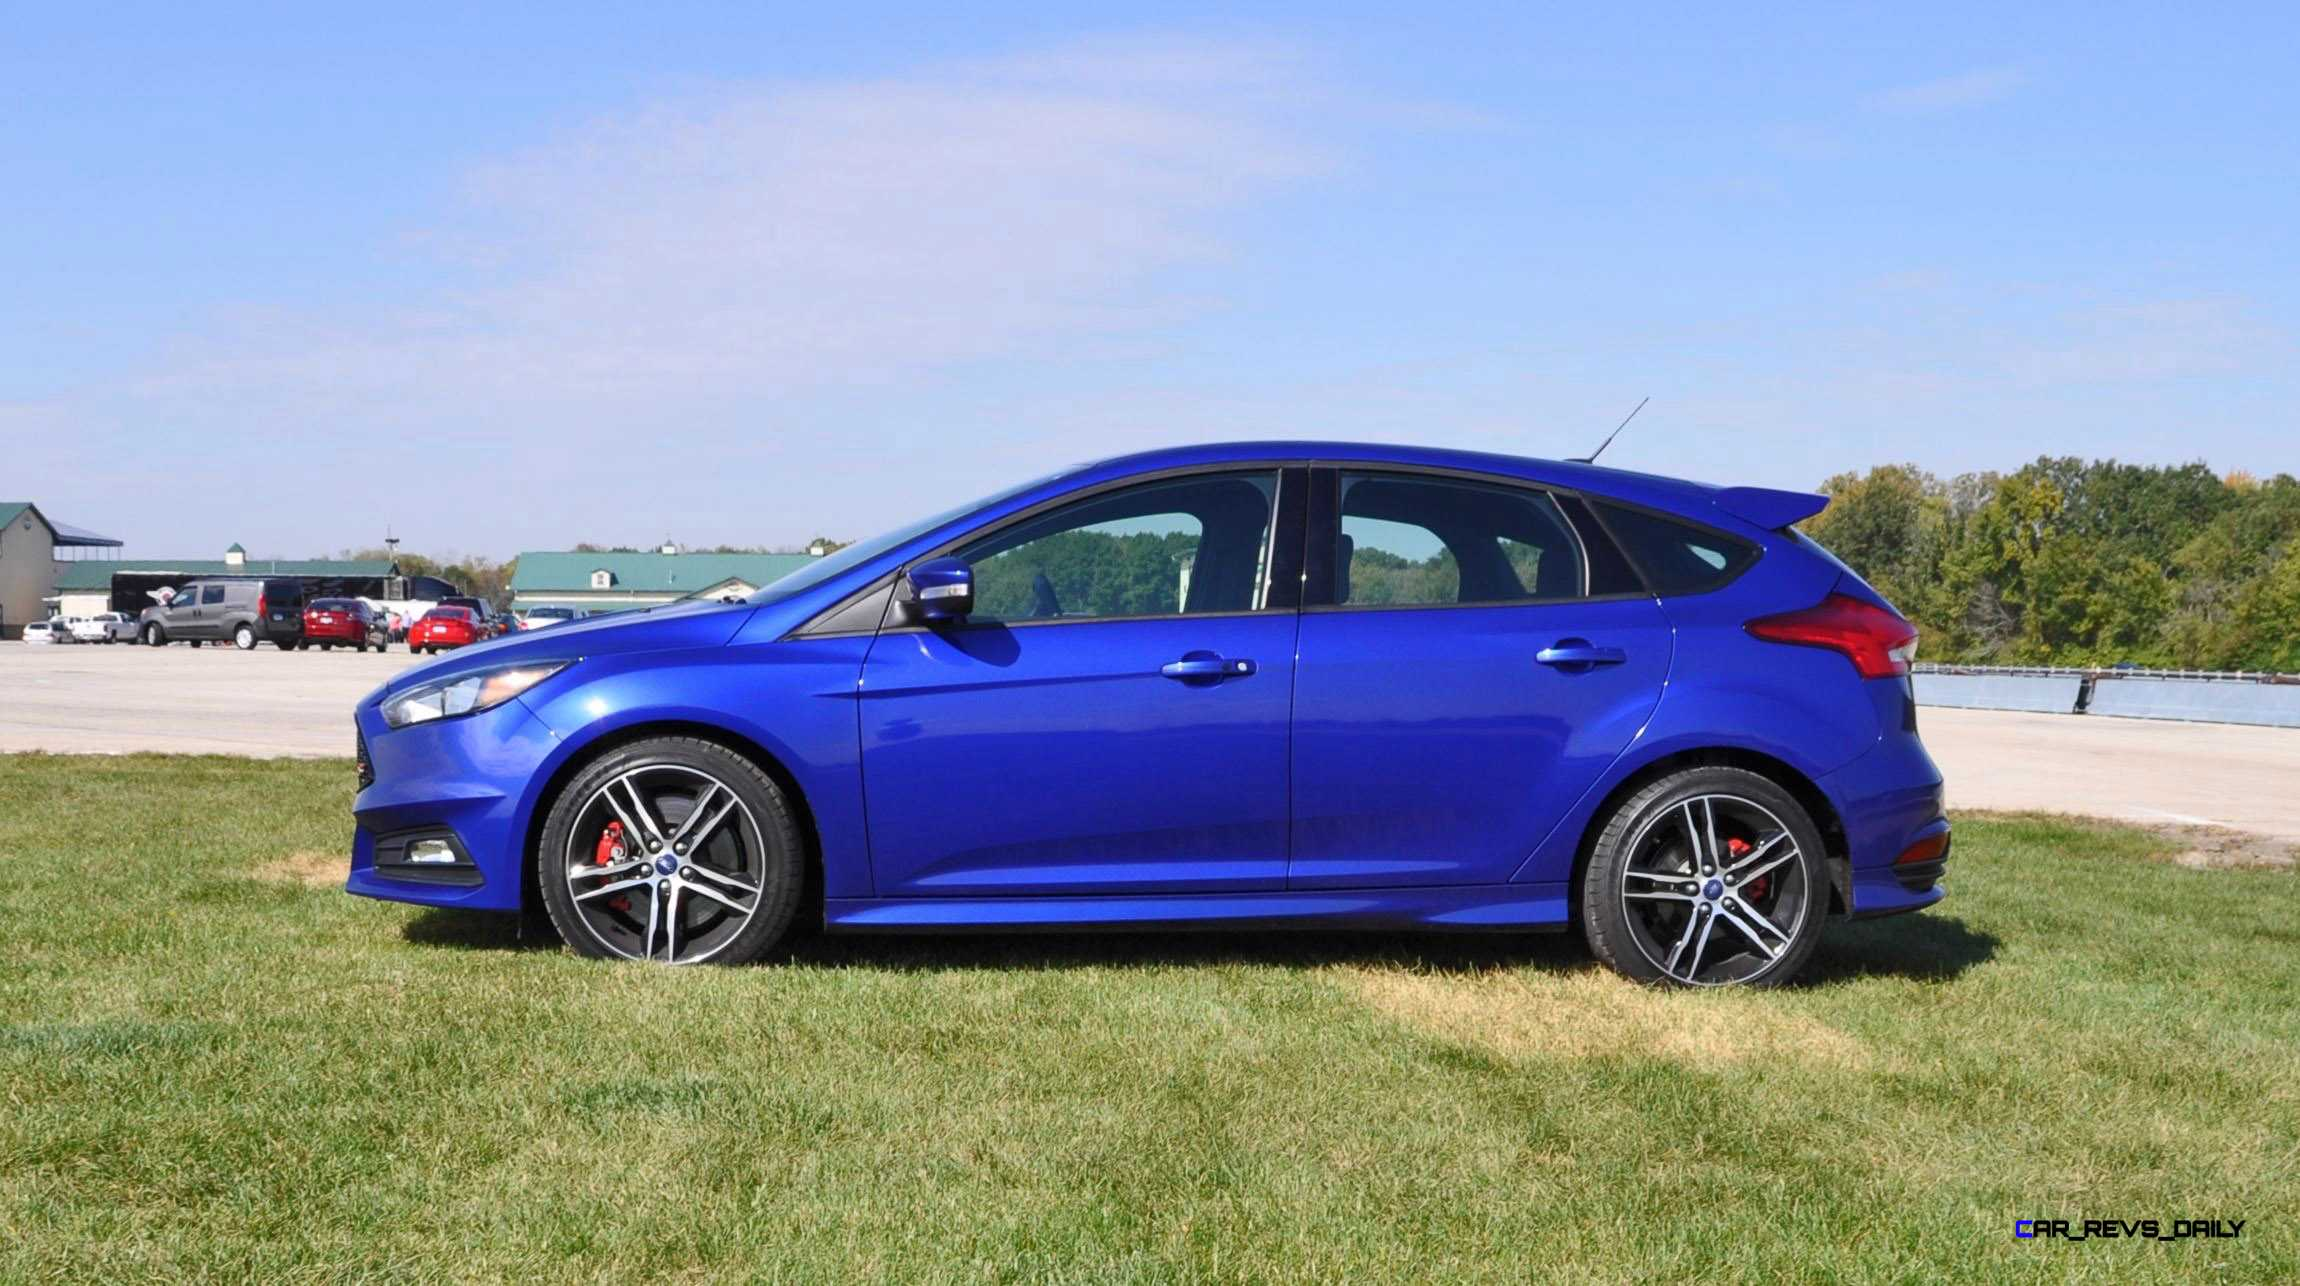 2016 ford focus st blue 200 interior and exterior images. Black Bedroom Furniture Sets. Home Design Ideas